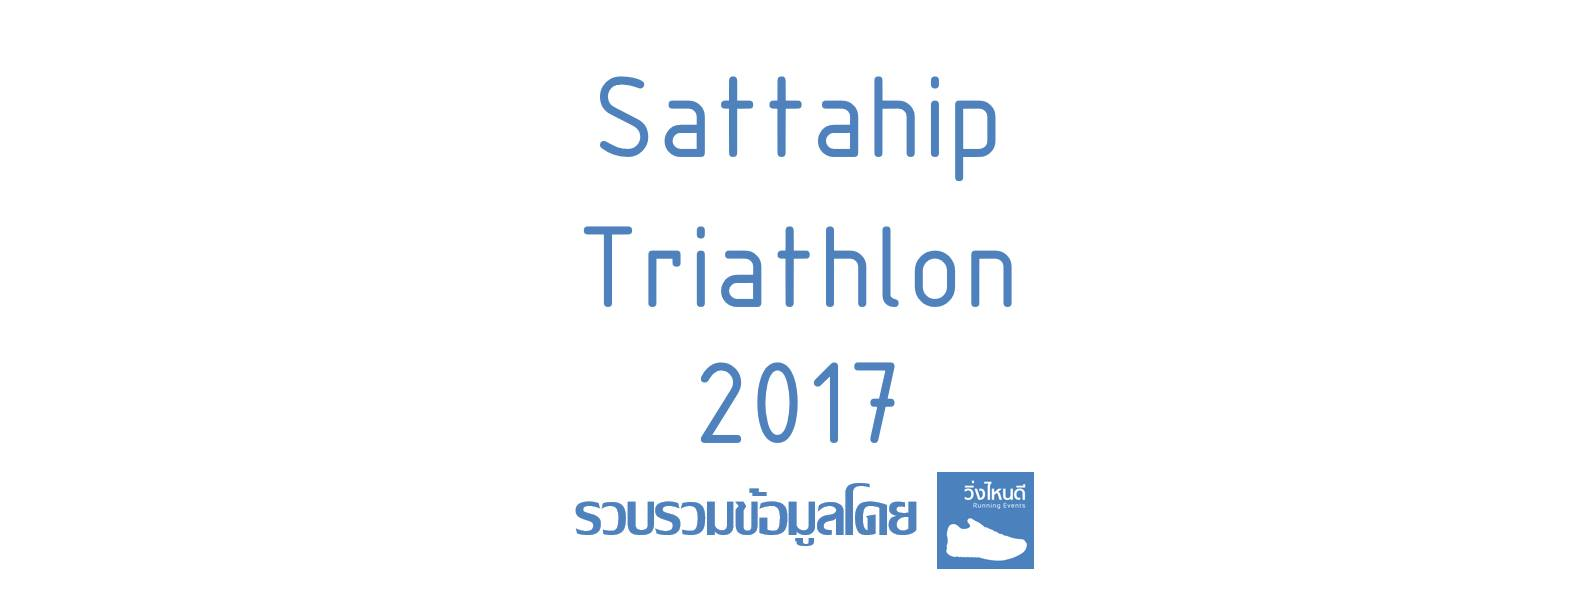 Sattahip Triathlon 2017